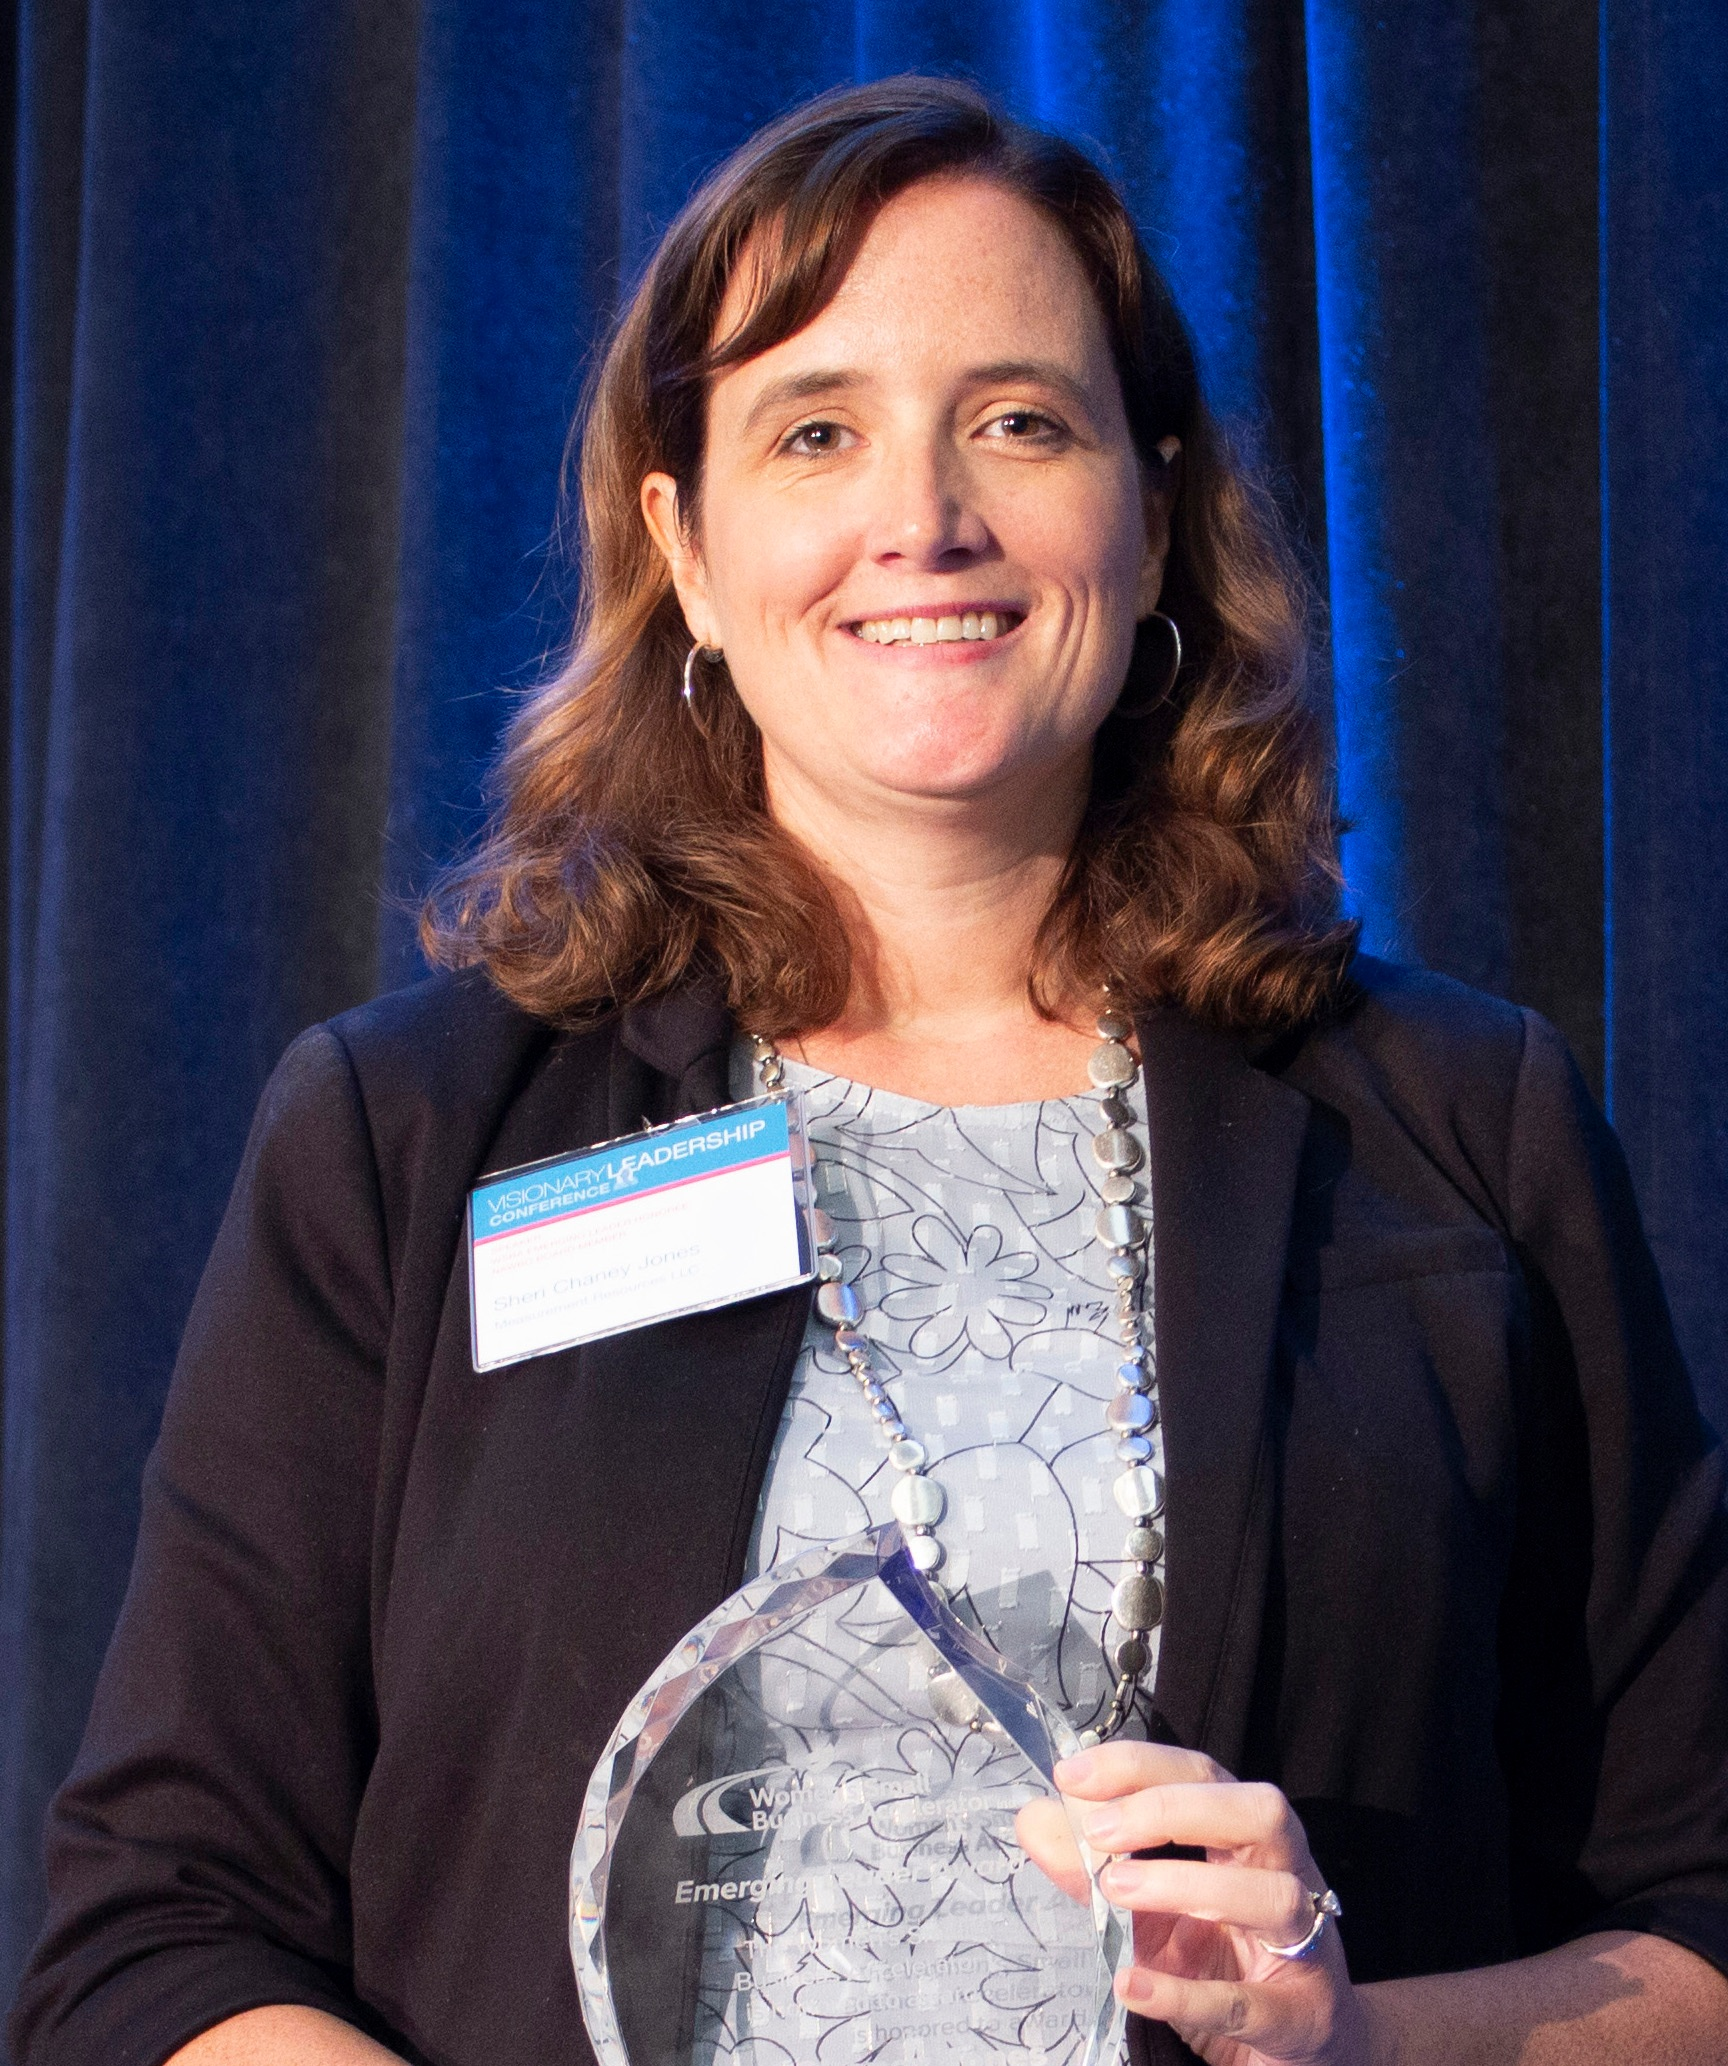 2018 Emerging Leader Award Recipient - Sheri Chaney JonesPresident Measurement Resources Company/ Author, Measurement Expert, and ConsultantMeasurement Resources provides services and strategies to help government and nonprofit organizations use performance measurement to improve programs, outcomes, and lives. Measurement is a powerful tool. Organizations that implement measurement systems turn data into outcomes. Staff see more opportunities, uncover obstacles sooner, and discover untapped efficiencies. They have better data to demonstrate impact, increase visibility, and raise funds. Measurement moves great missions forward.